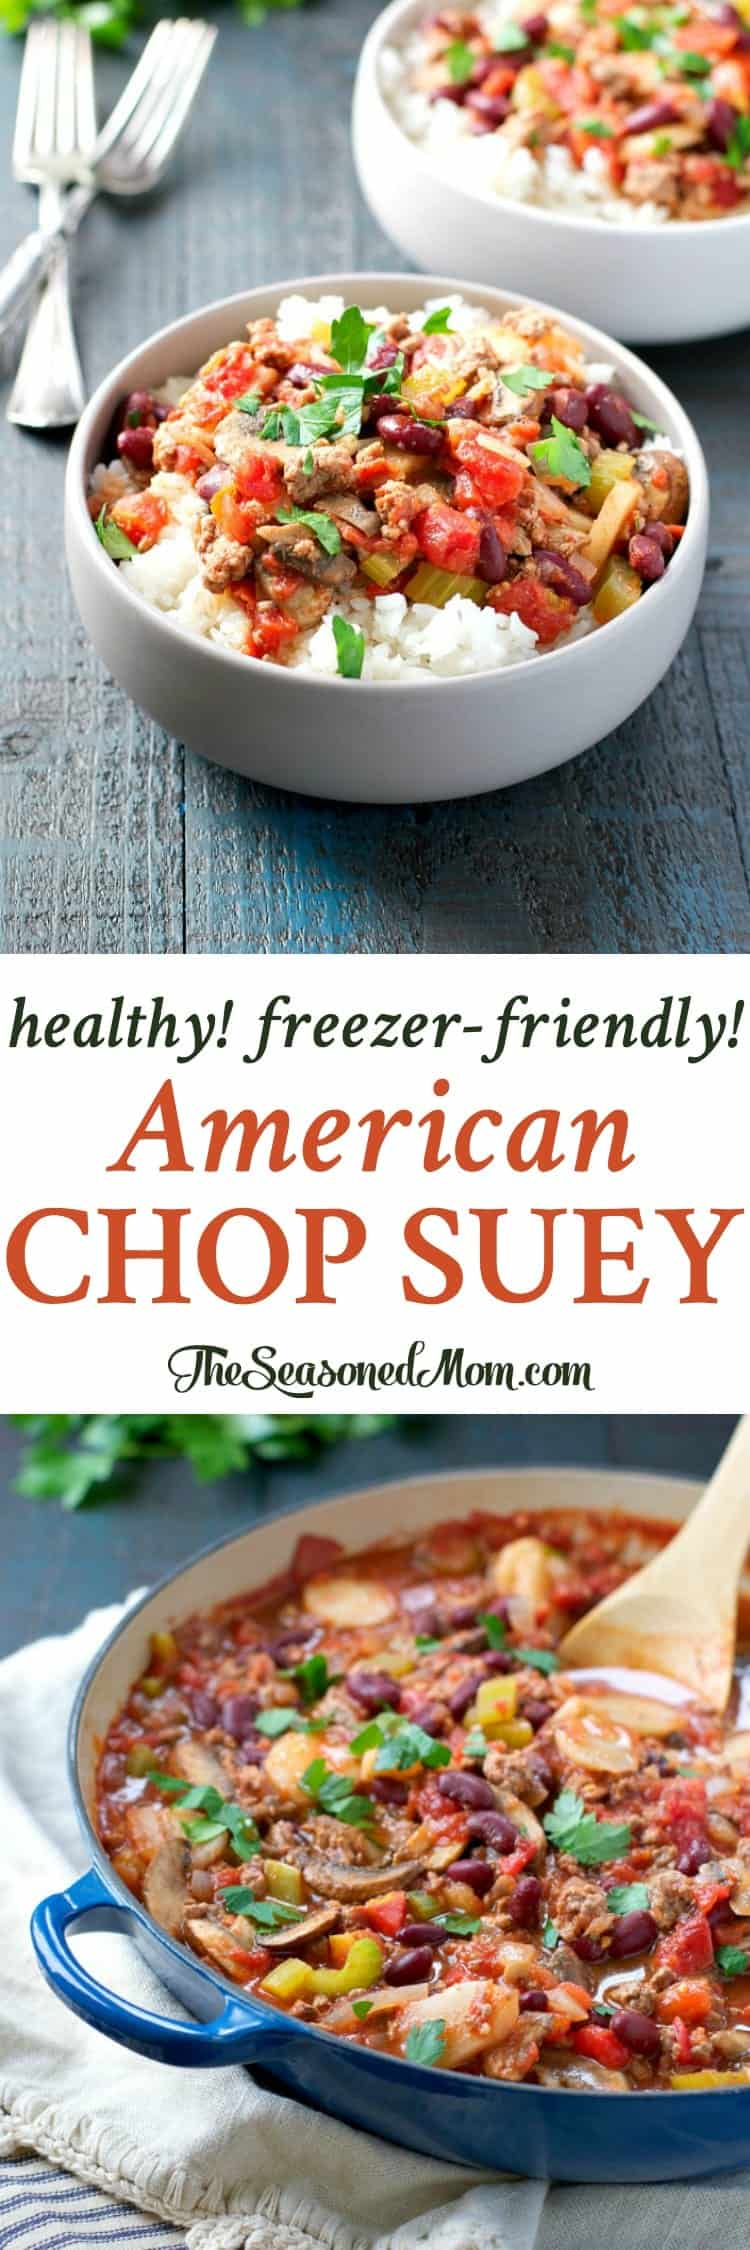 Loaded with ground beef, garlic, onion, and veggies, this American Chop Suey is a healthy, freezer-friendly, and easy dinner that comes together in one skillet!